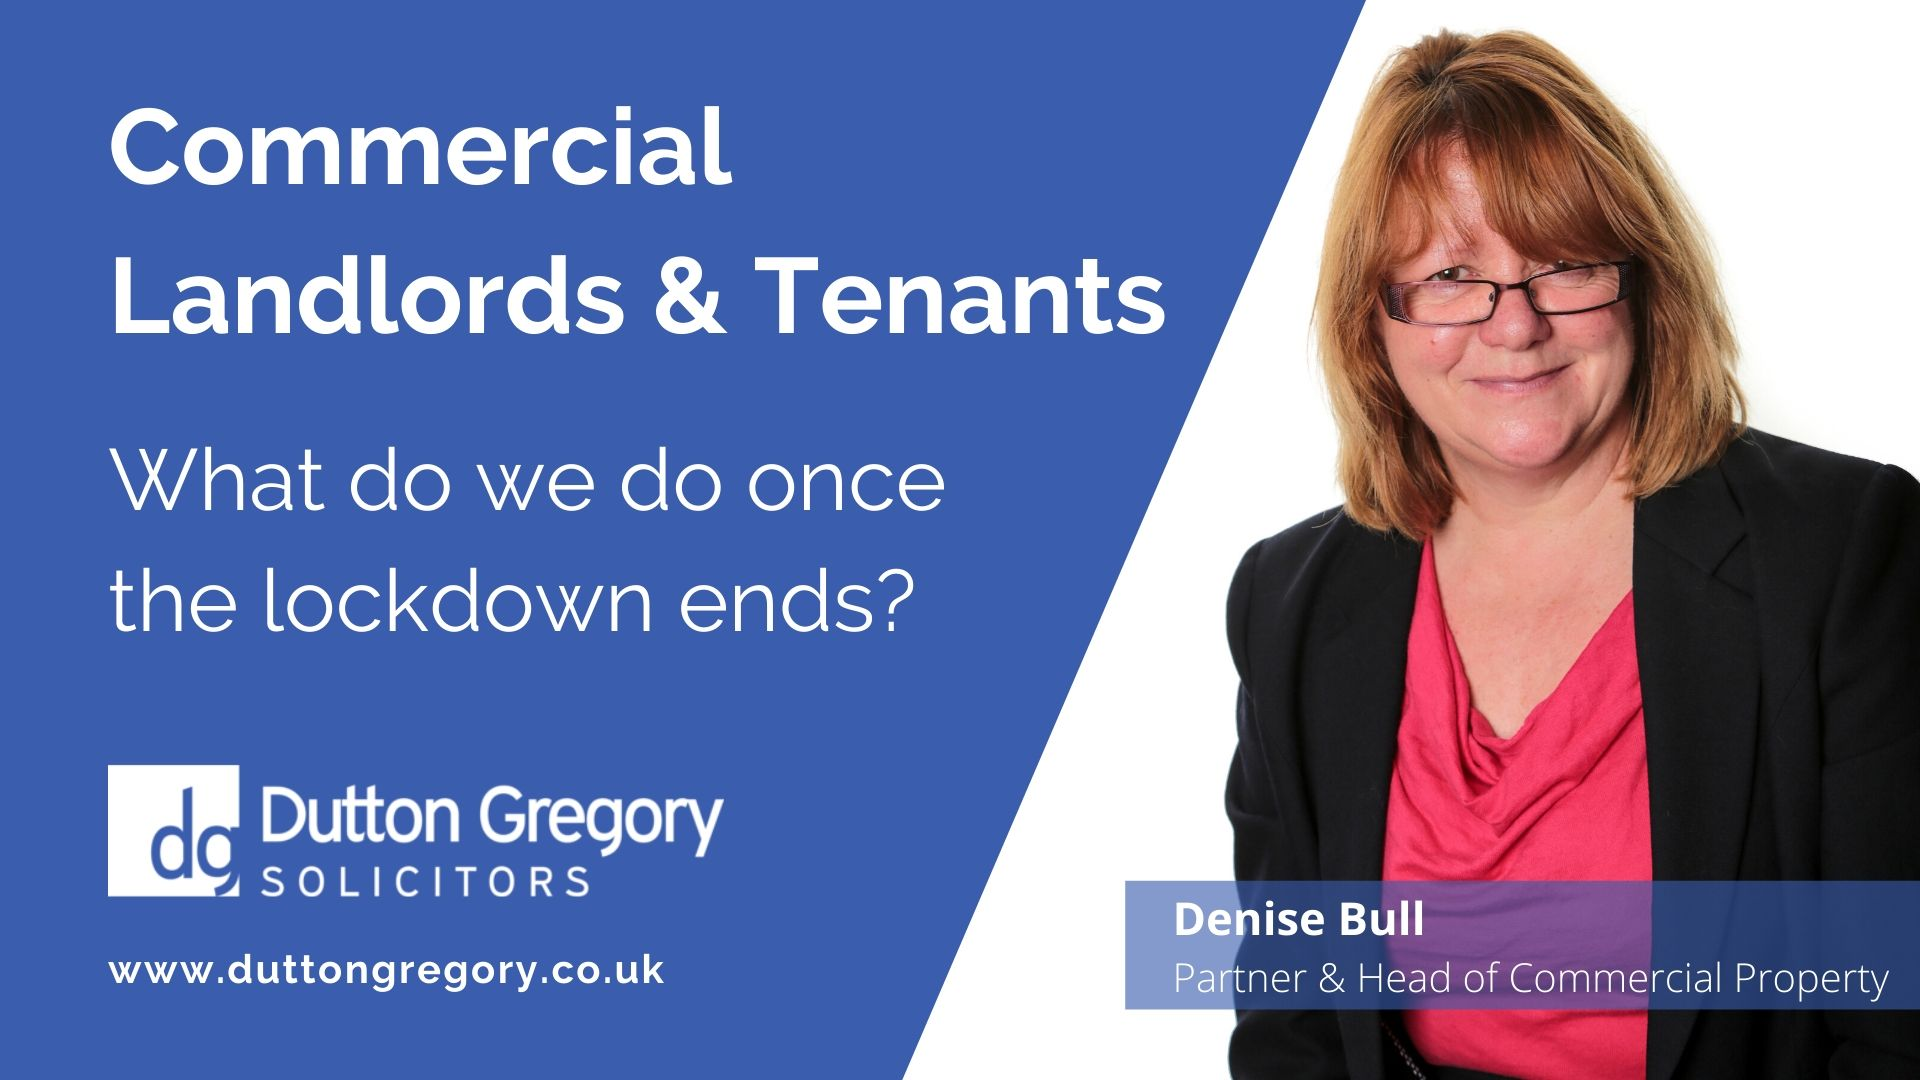 Commercial landlords and tenants: what do we do once the lockdown ends?